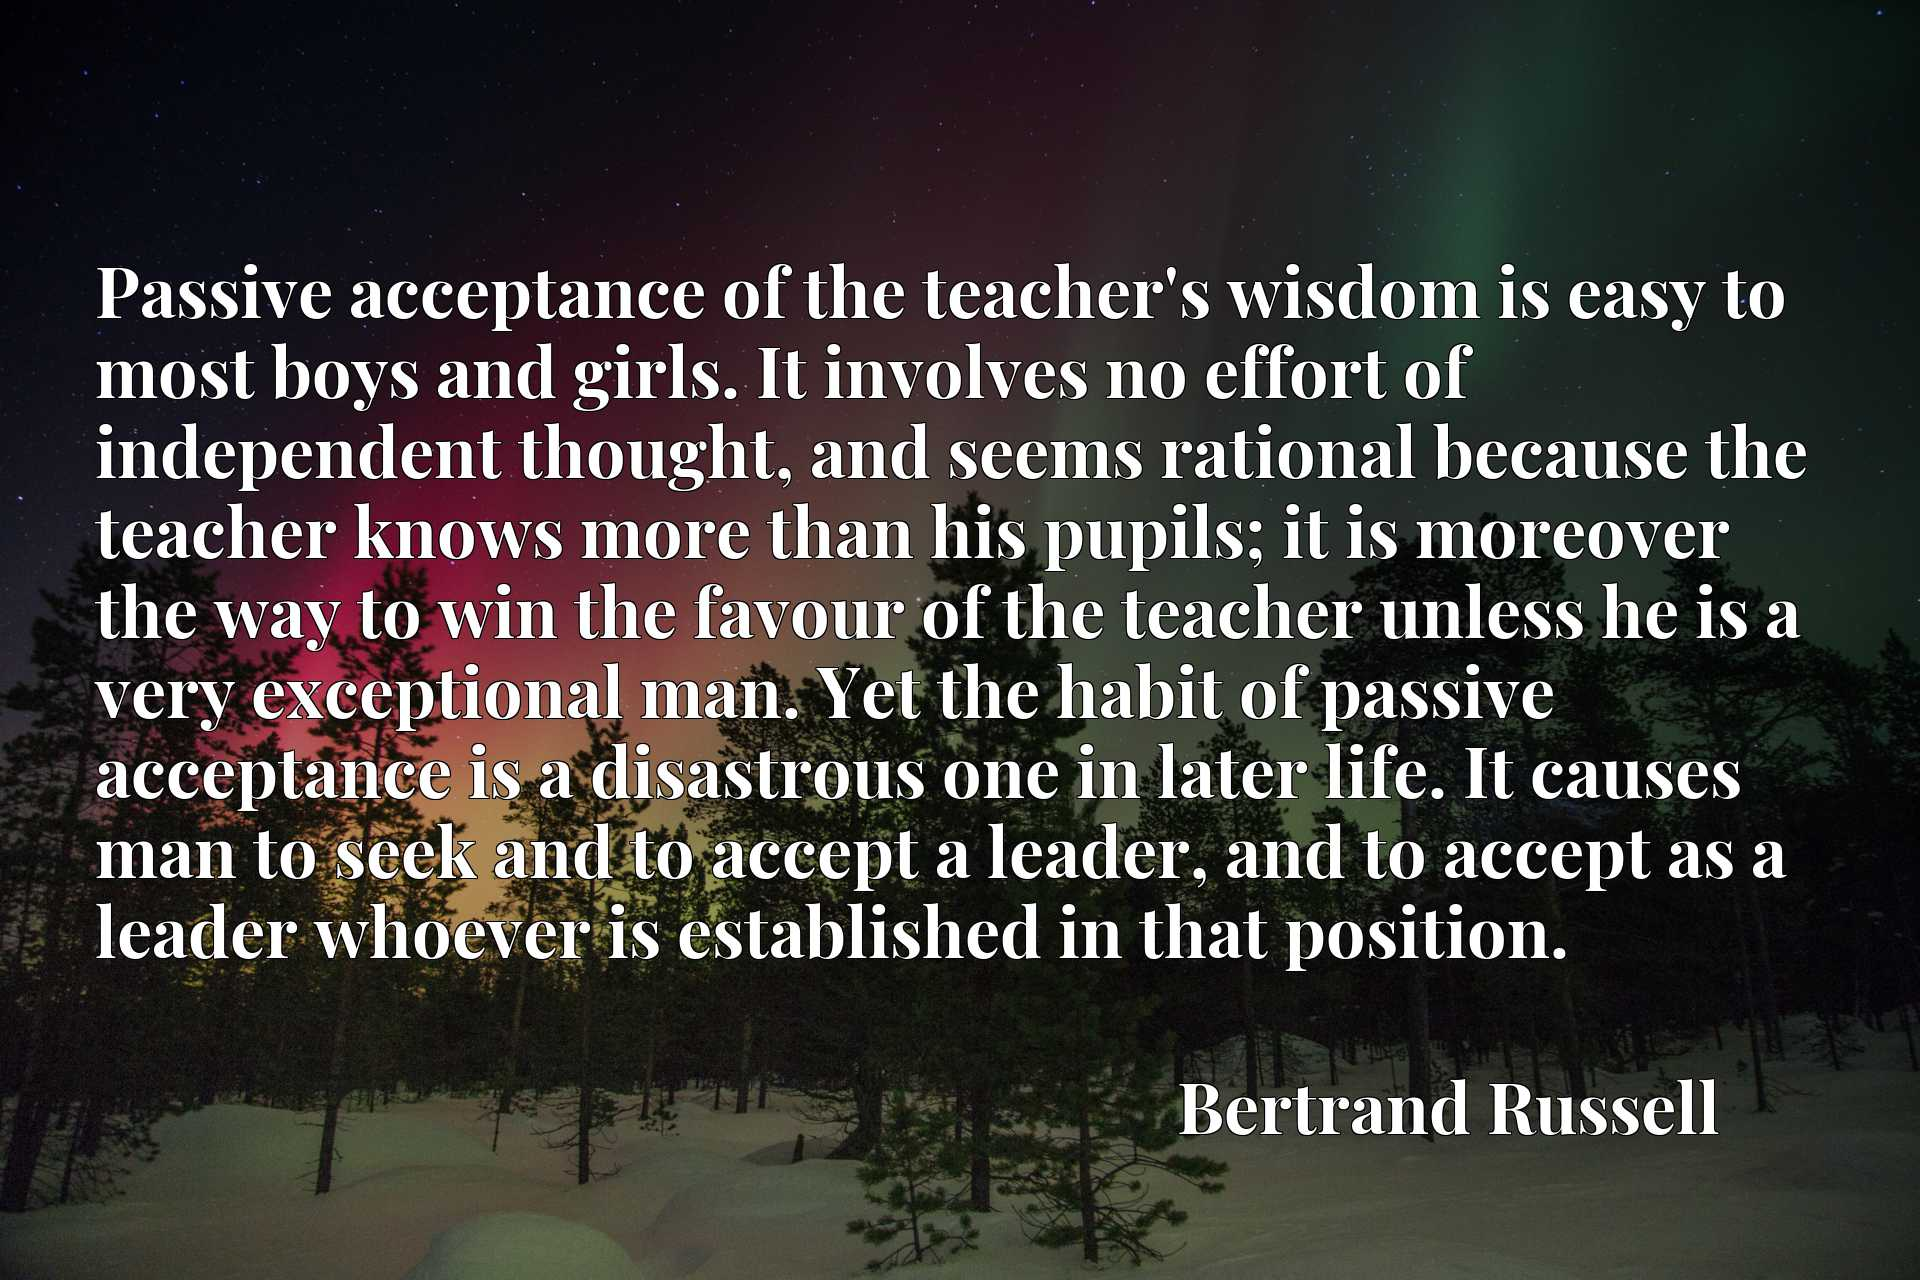 Passive acceptance of the teacher's wisdom is easy to most boys and girls. It involves no effort of independent thought, and seems rational because the teacher knows more than his pupils; it is moreover the way to win the favour of the teacher unless he is a very exceptional man. Yet the habit of passive acceptance is a disastrous one in later life. It causes man to seek and to accept a leader, and to accept as a leader whoever is established in that position.